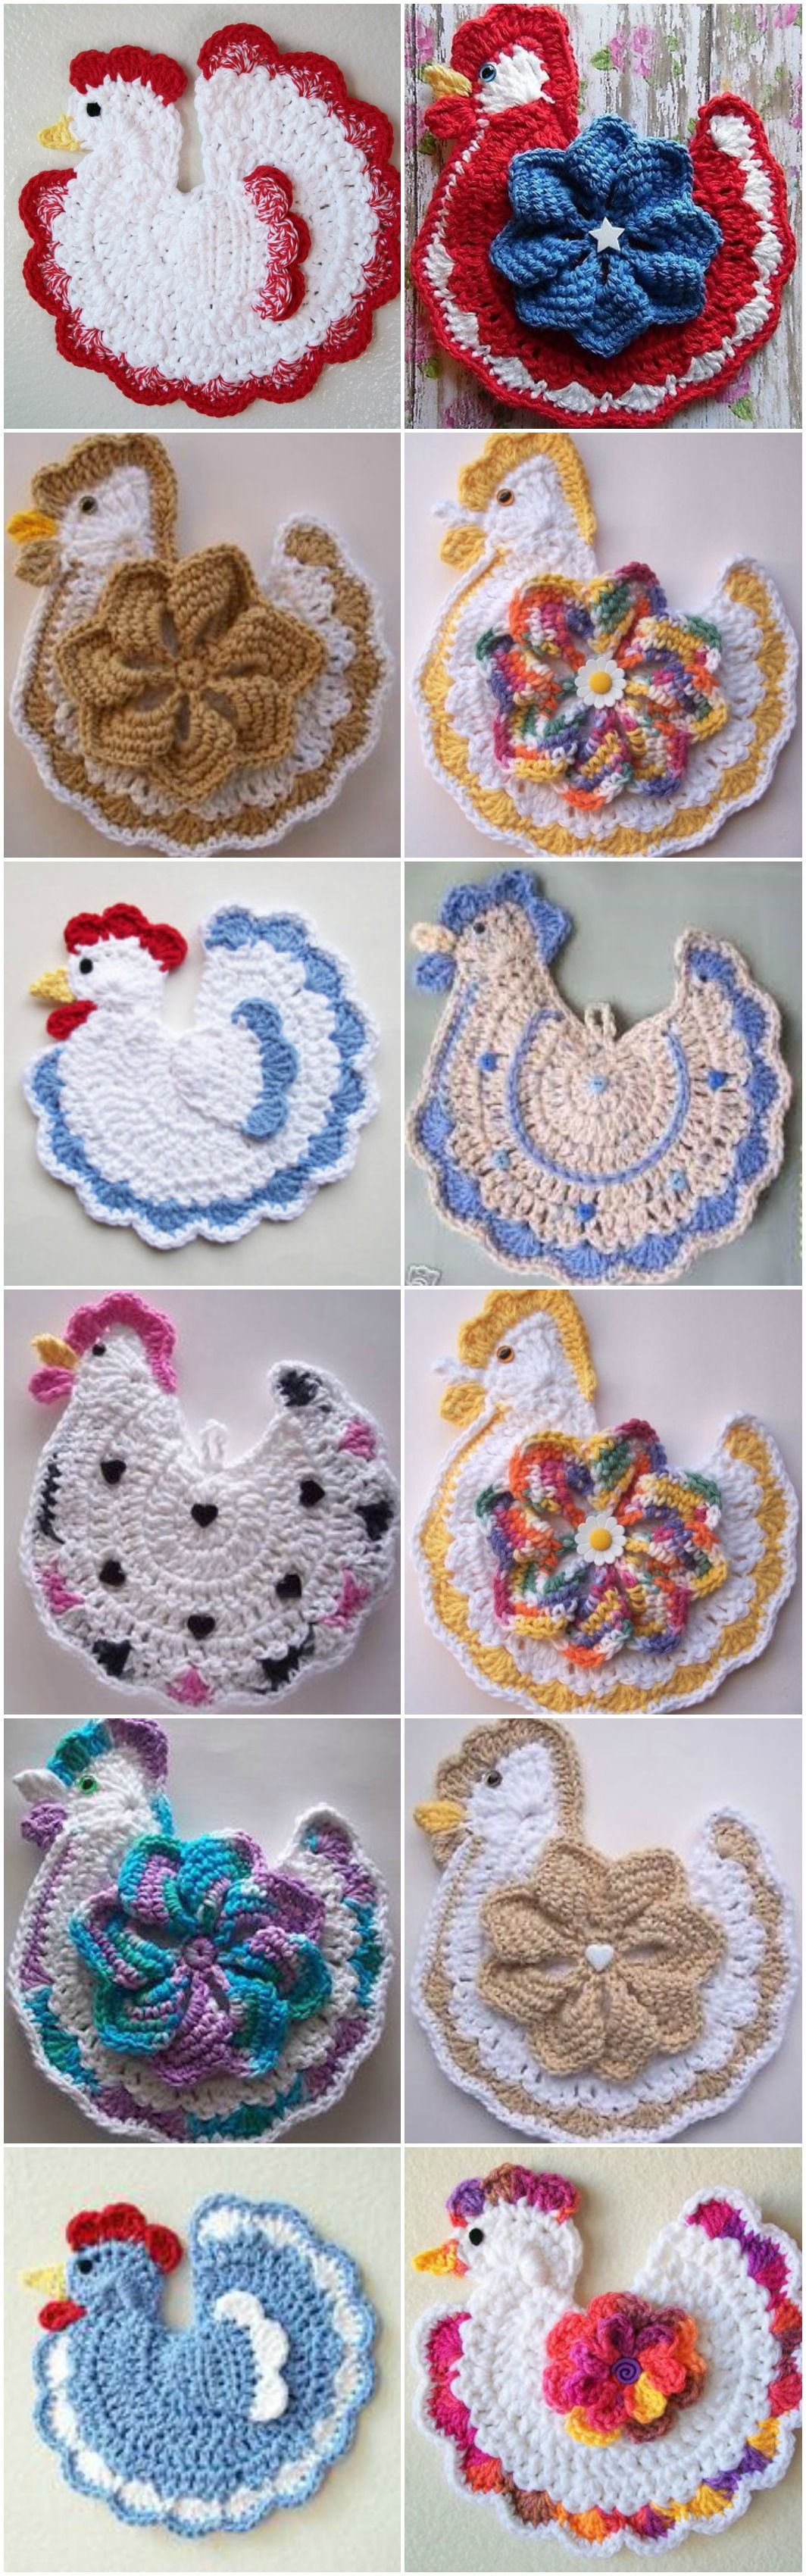 Crochet Chicken Potholder | Towel Toppers | Pinterest | Tejido ...